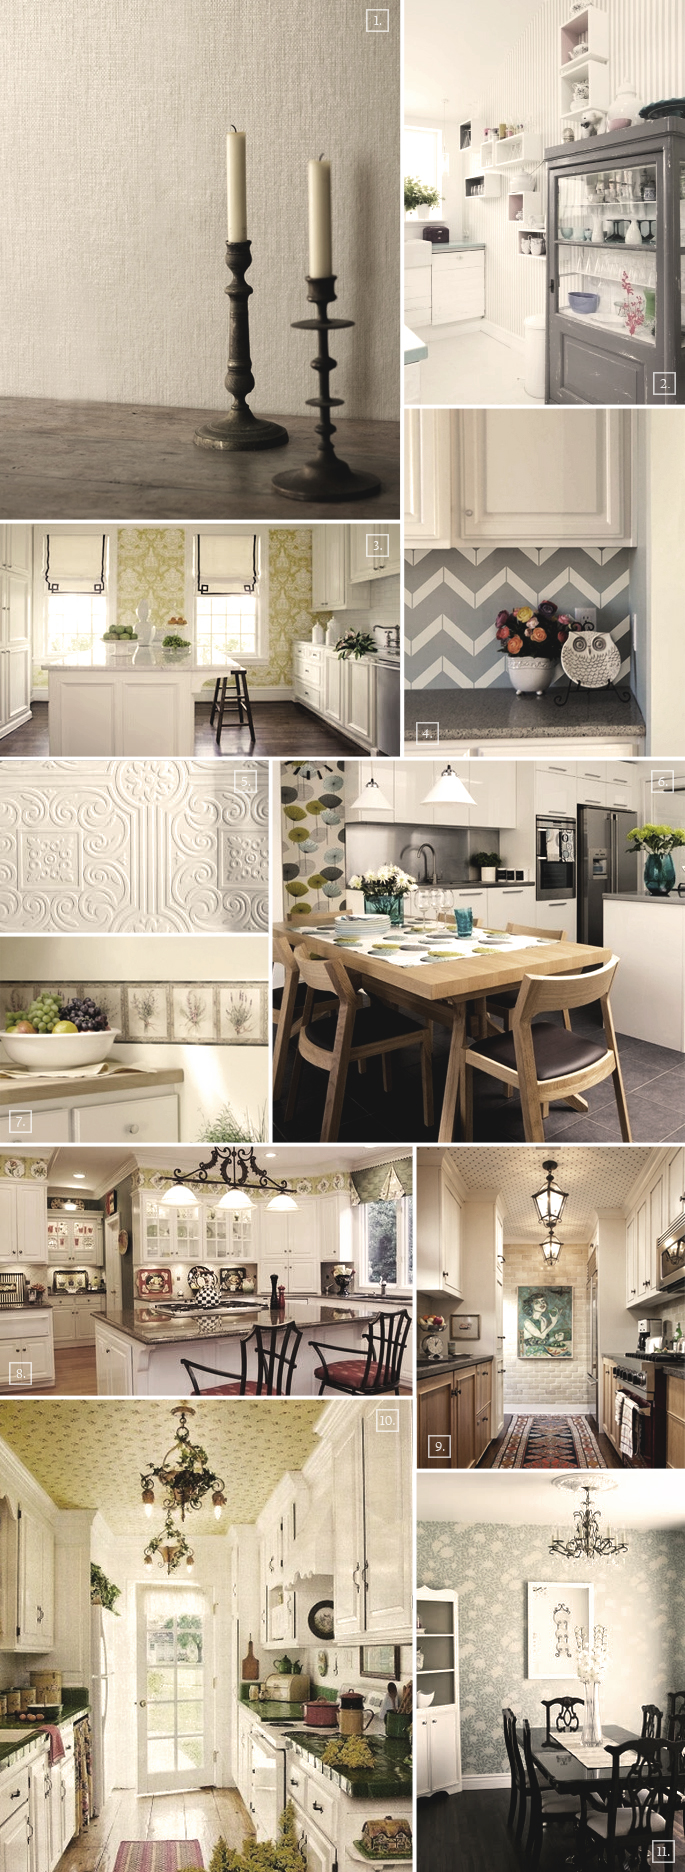 on ideas and designs when it comes to using wallpaper in a kitchen 685x1872